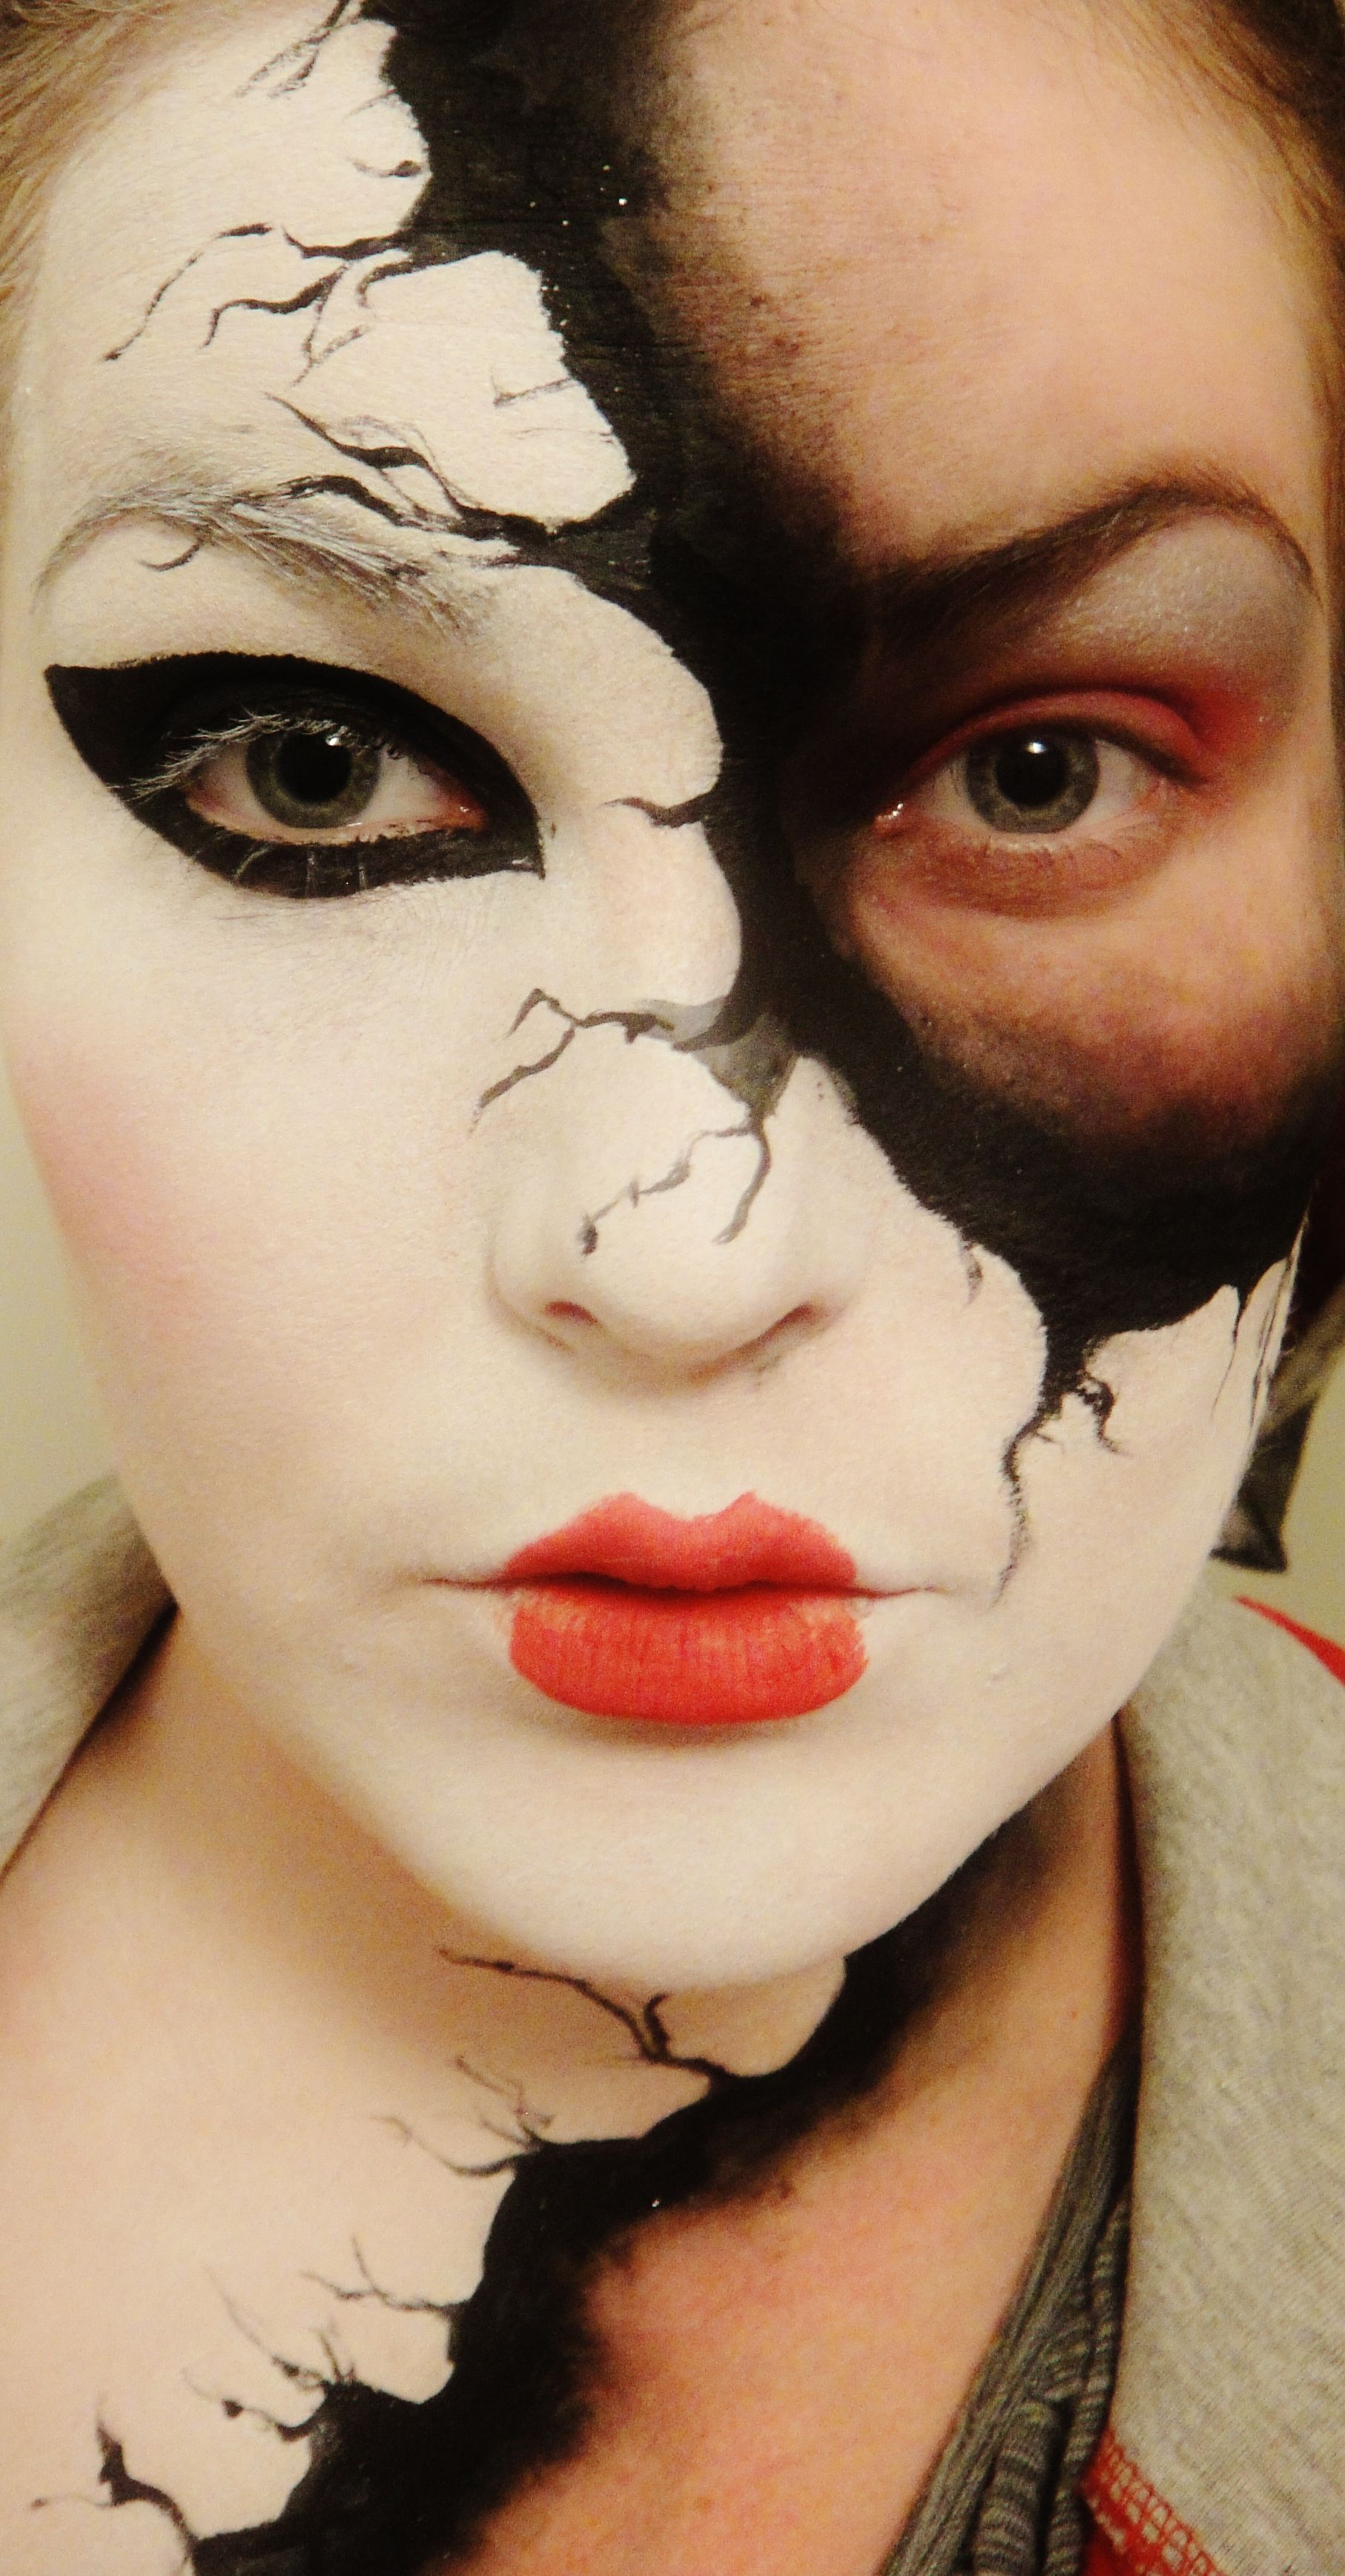 faded mask Halloween cool creepy mysterious pretty face - Cool Halloween Makeup For Girls